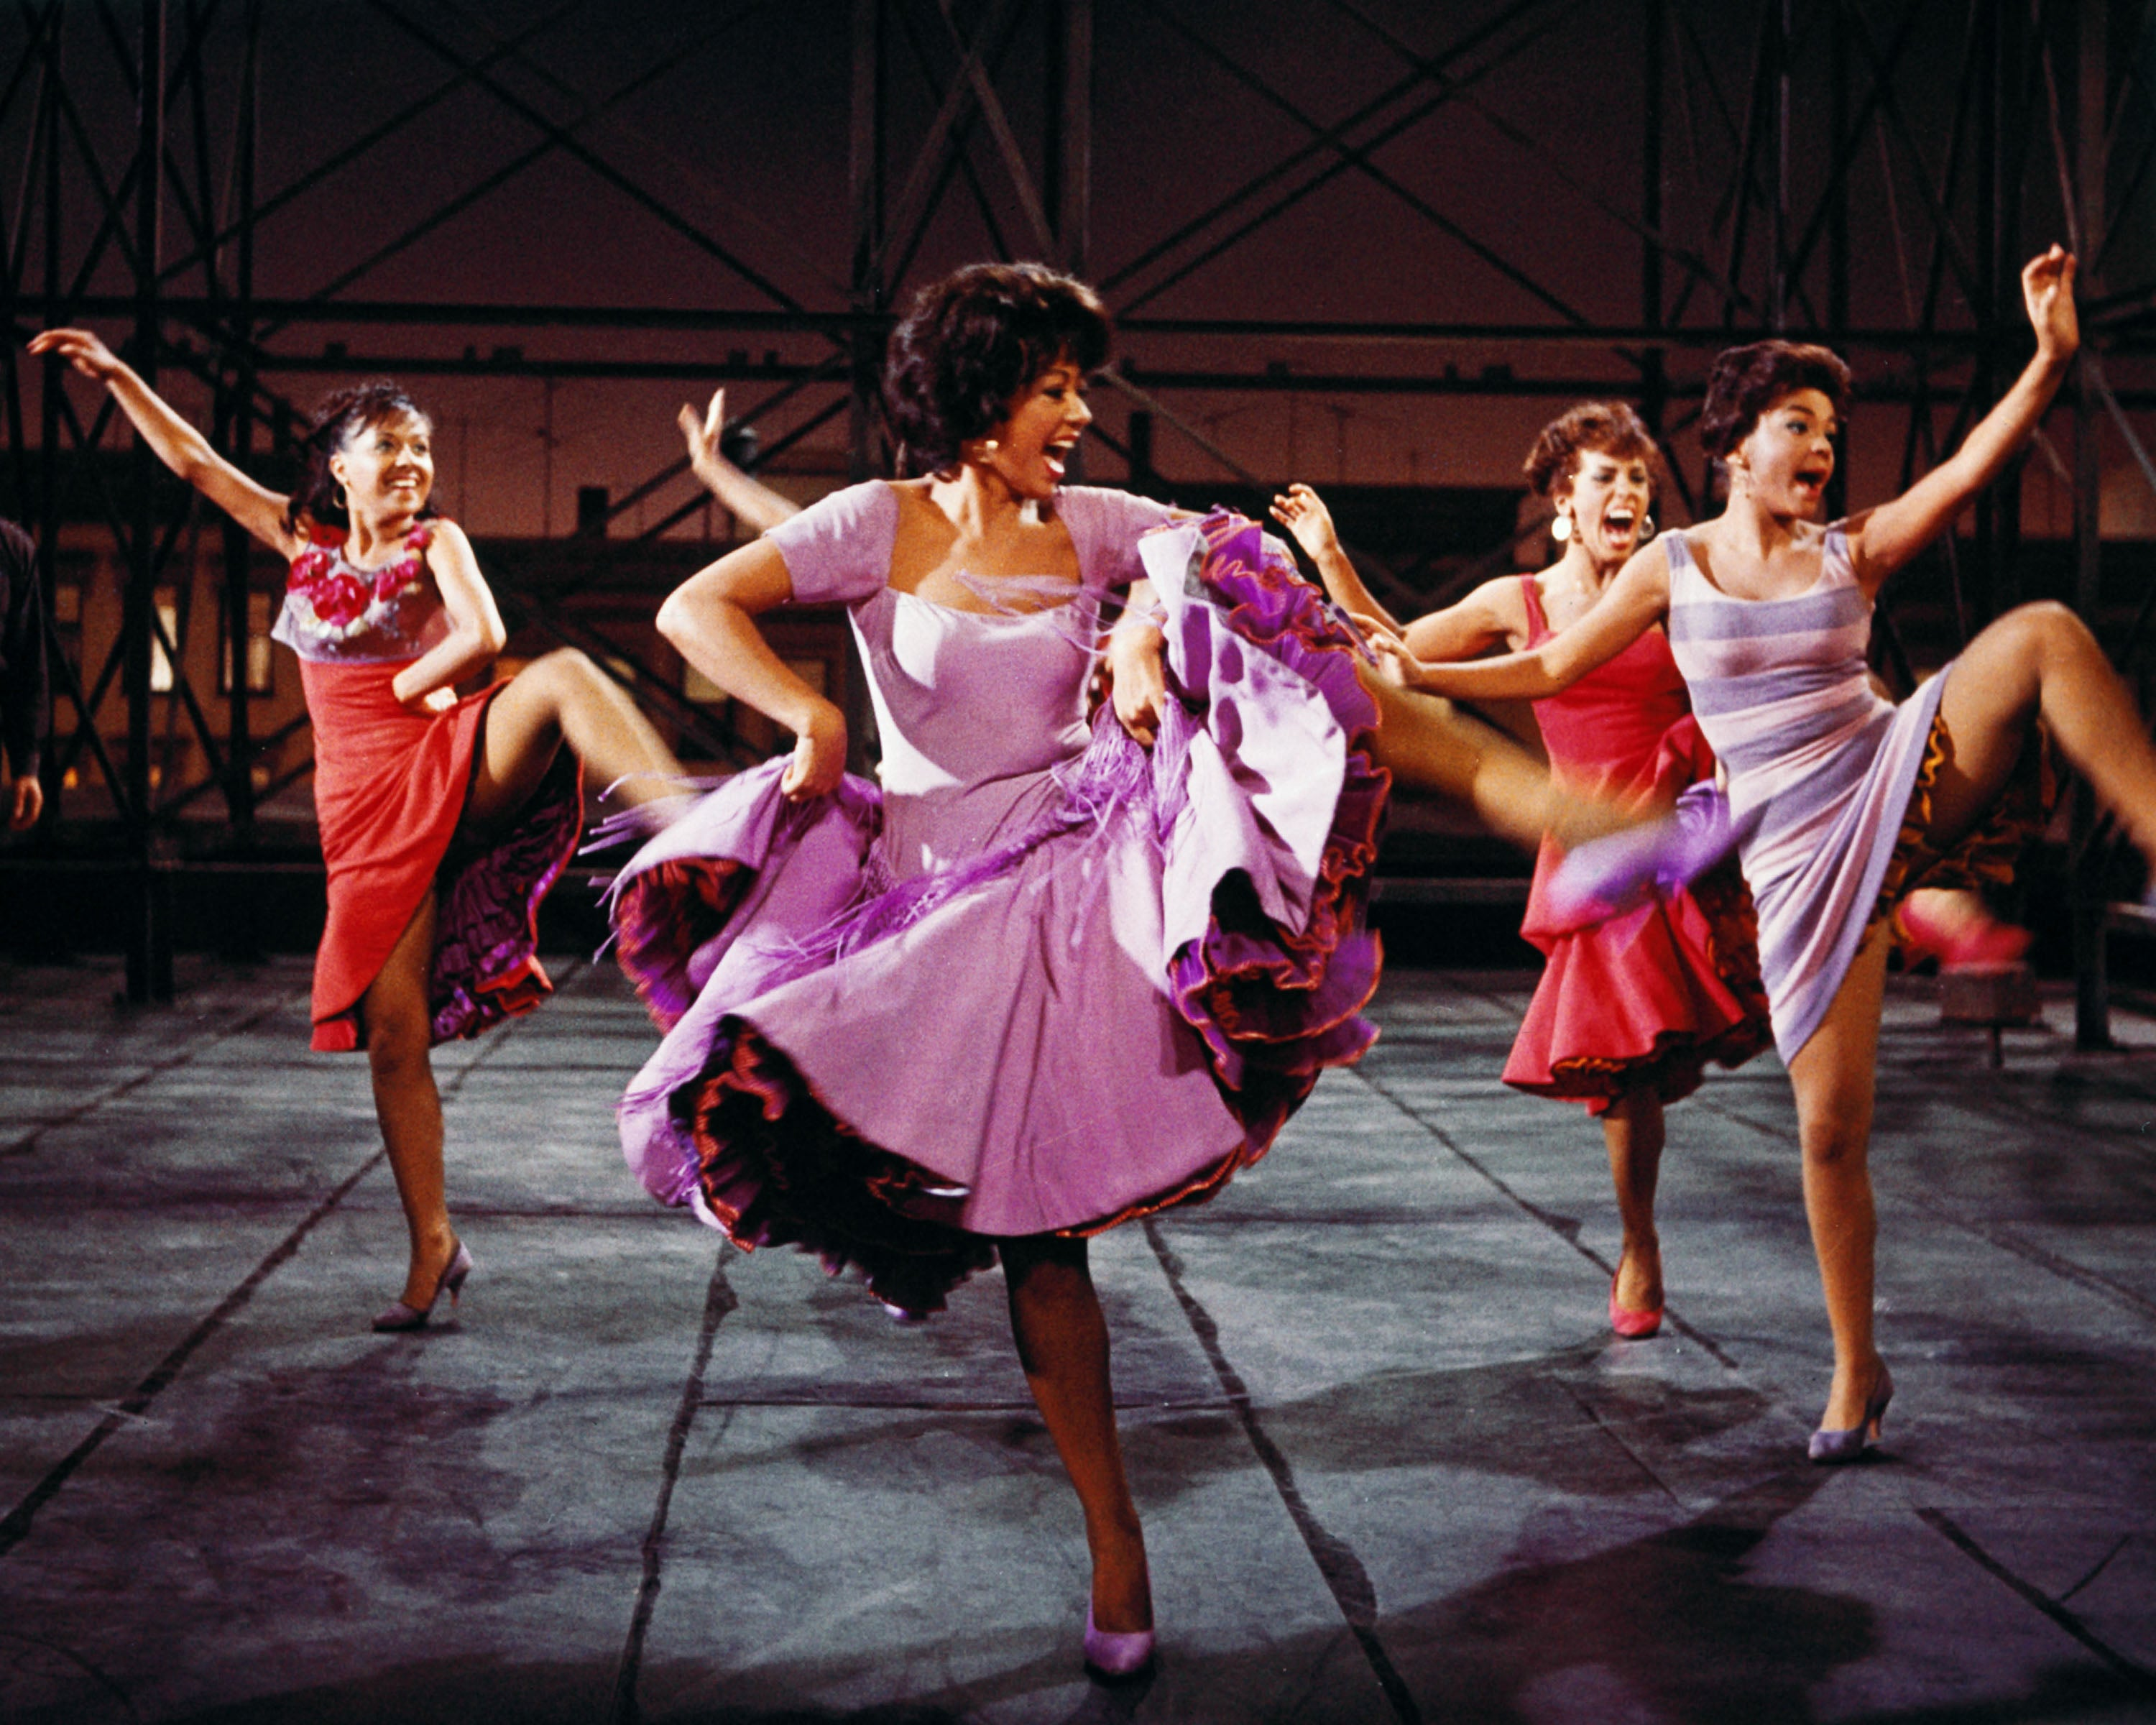 Rita Moreno in a scene from West Side Story